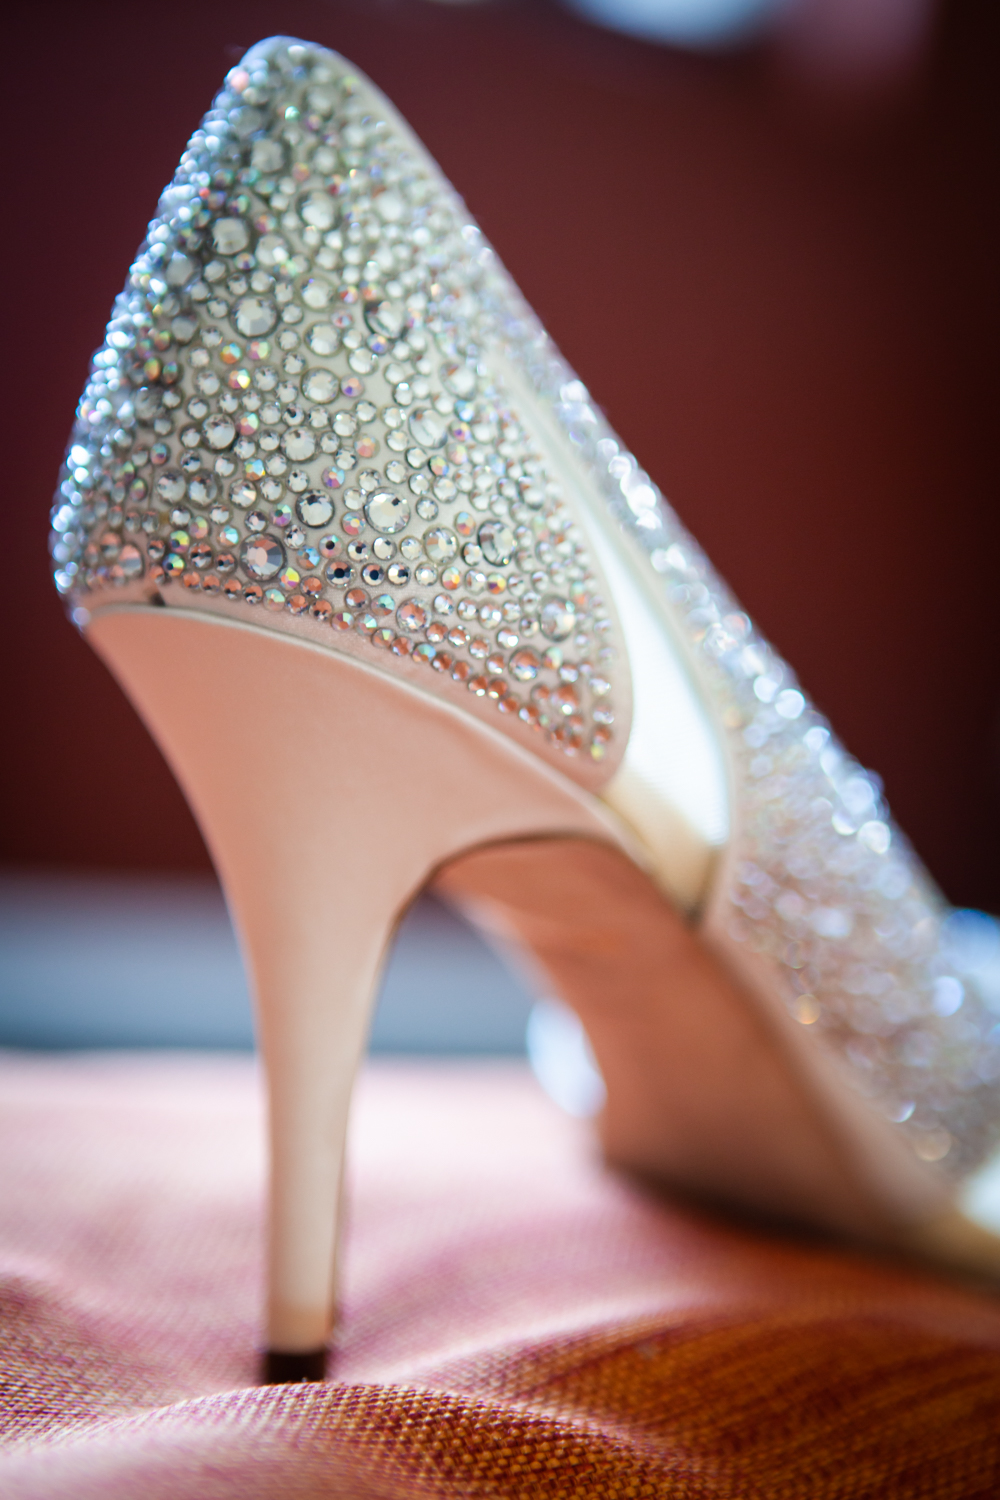 Heel of shoe encrusted with diamond-like sequins